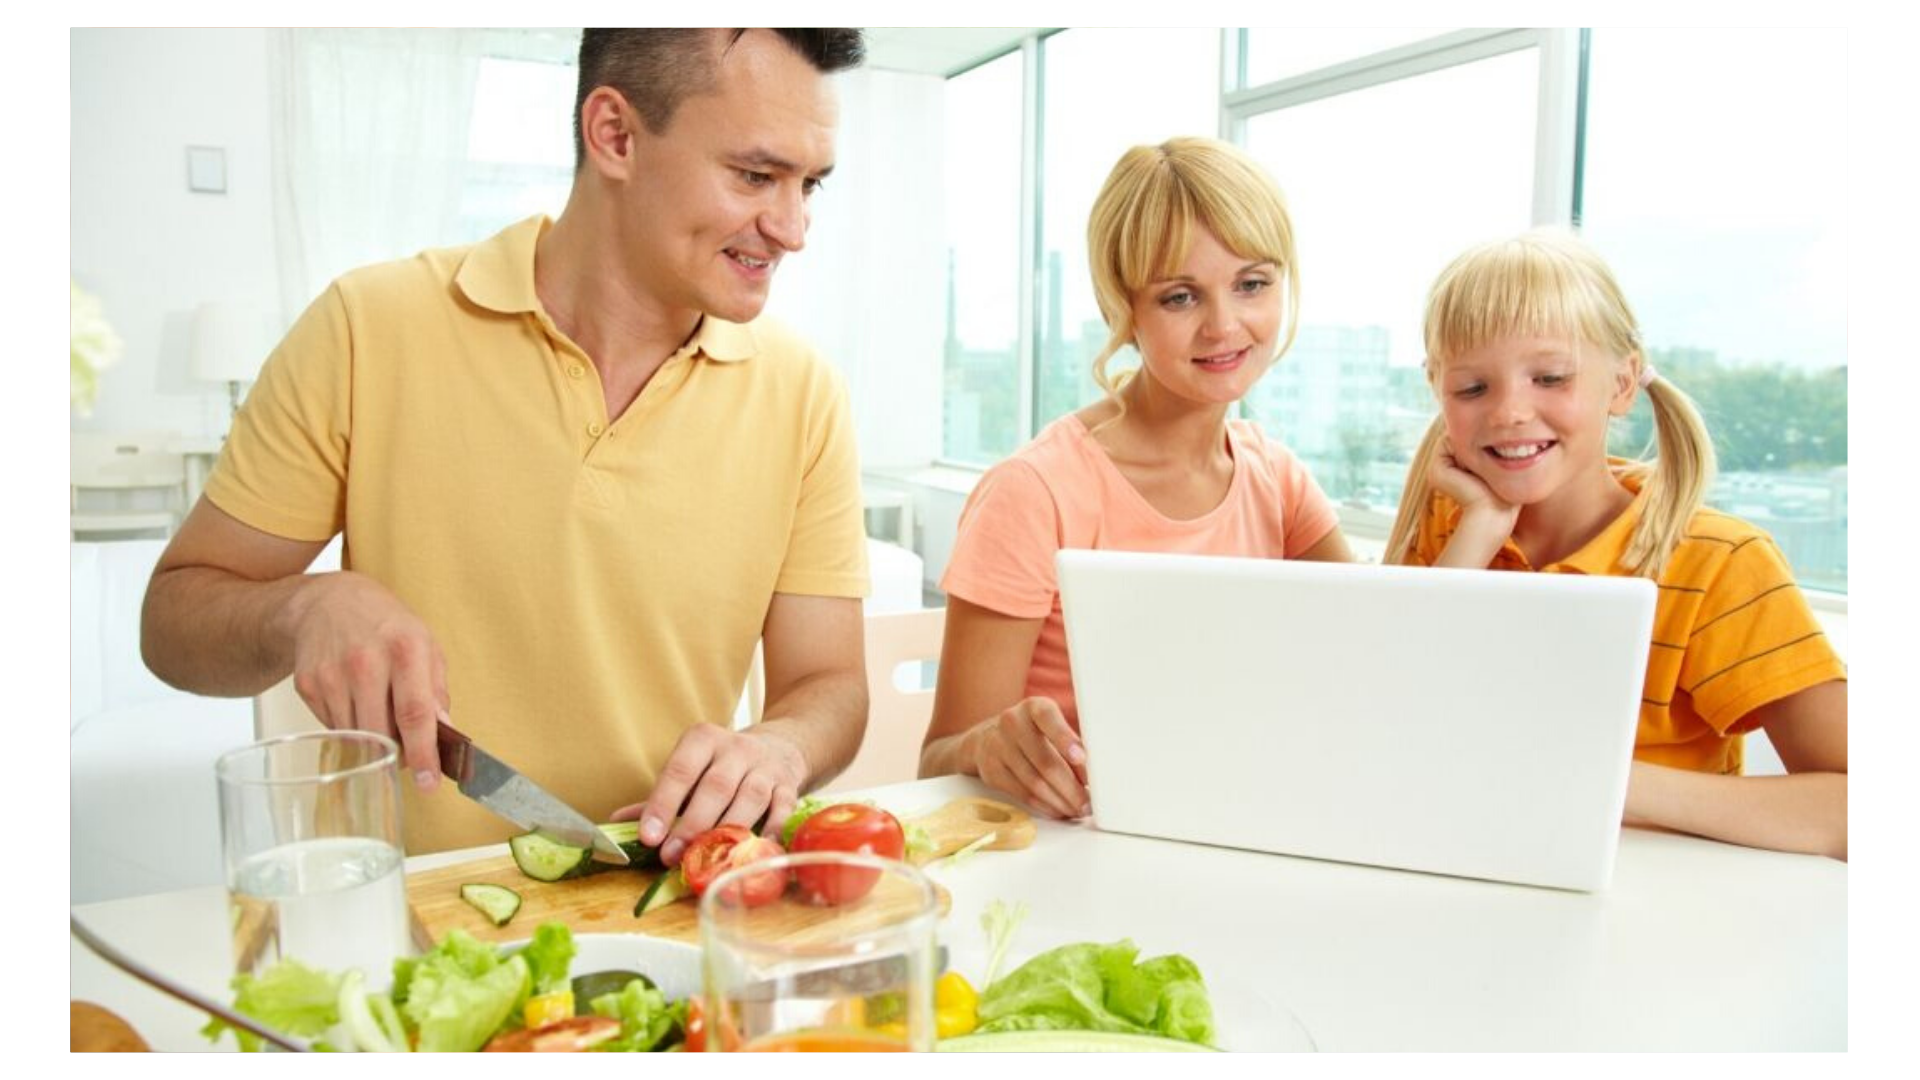 family preparing healthy meal while looking online